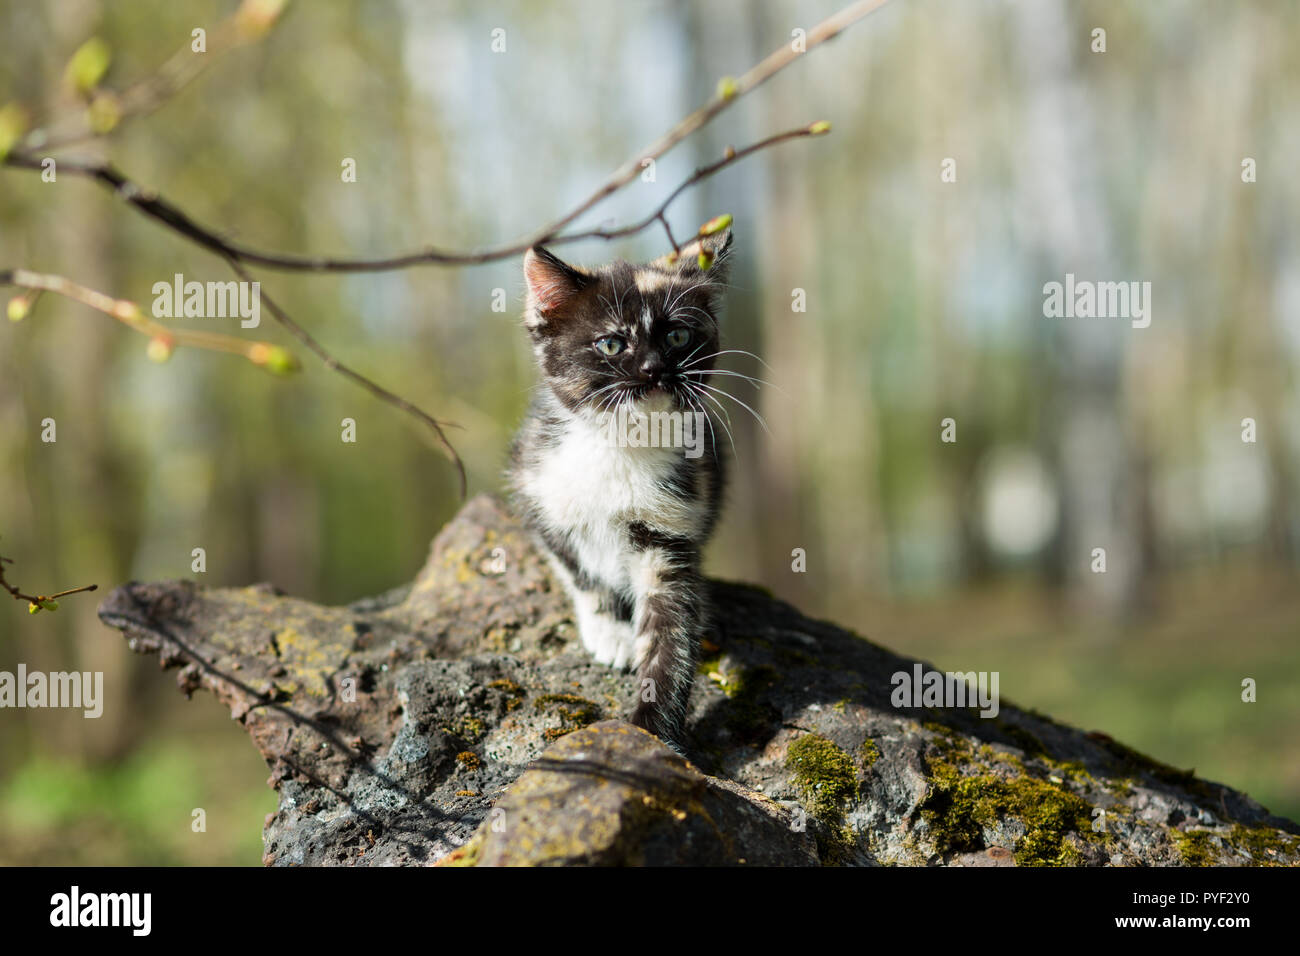 Small kitten of tortoiseshell color in the park creeps over a stone overgrown with moss - Stock Image